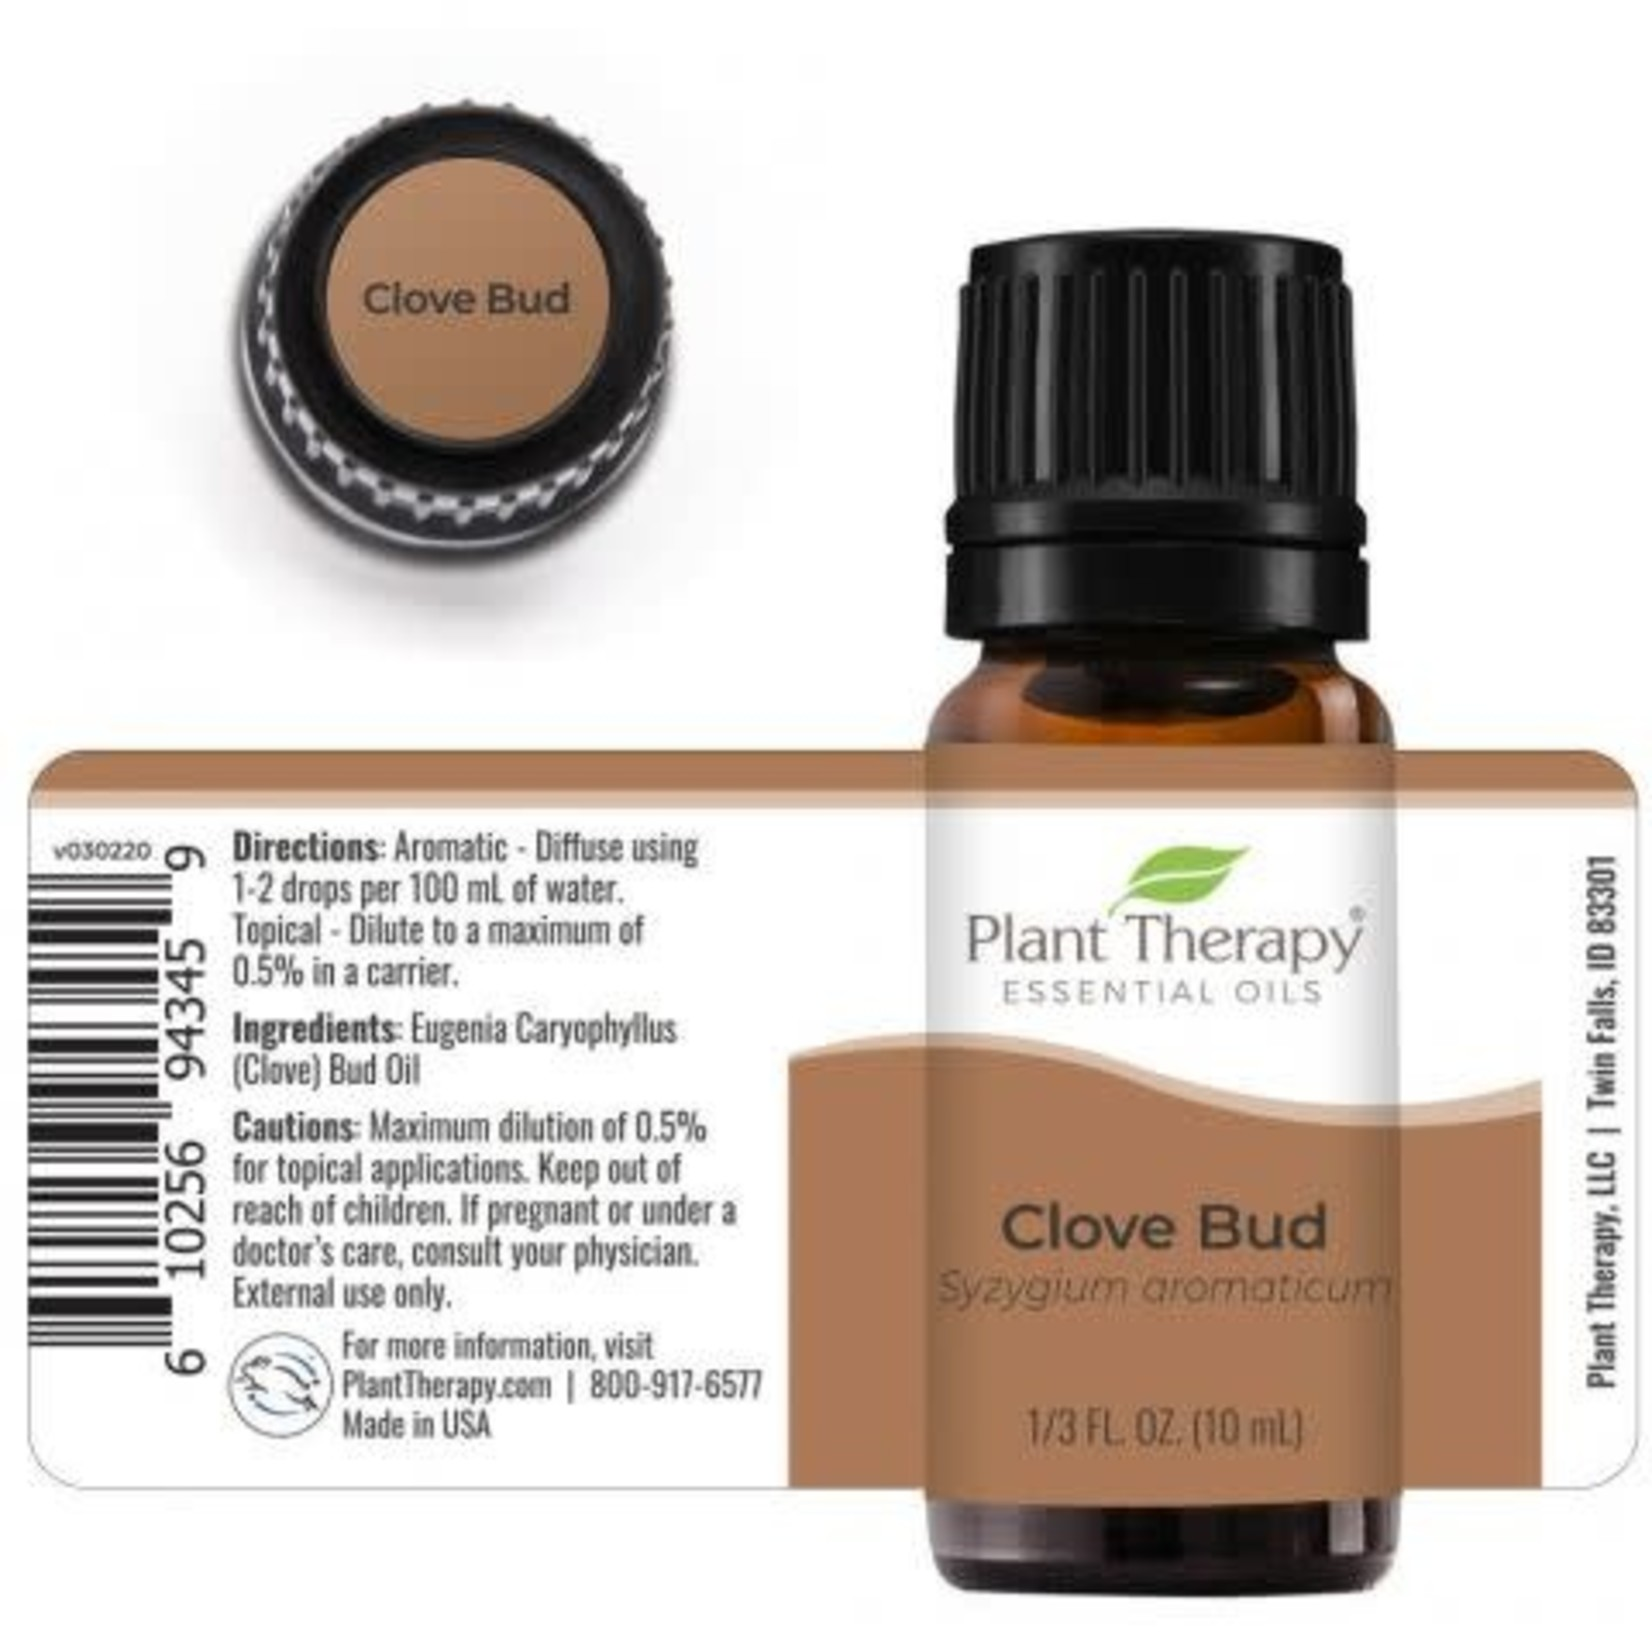 Plant Therapy PT Clove Bud Essential Oil 10ml